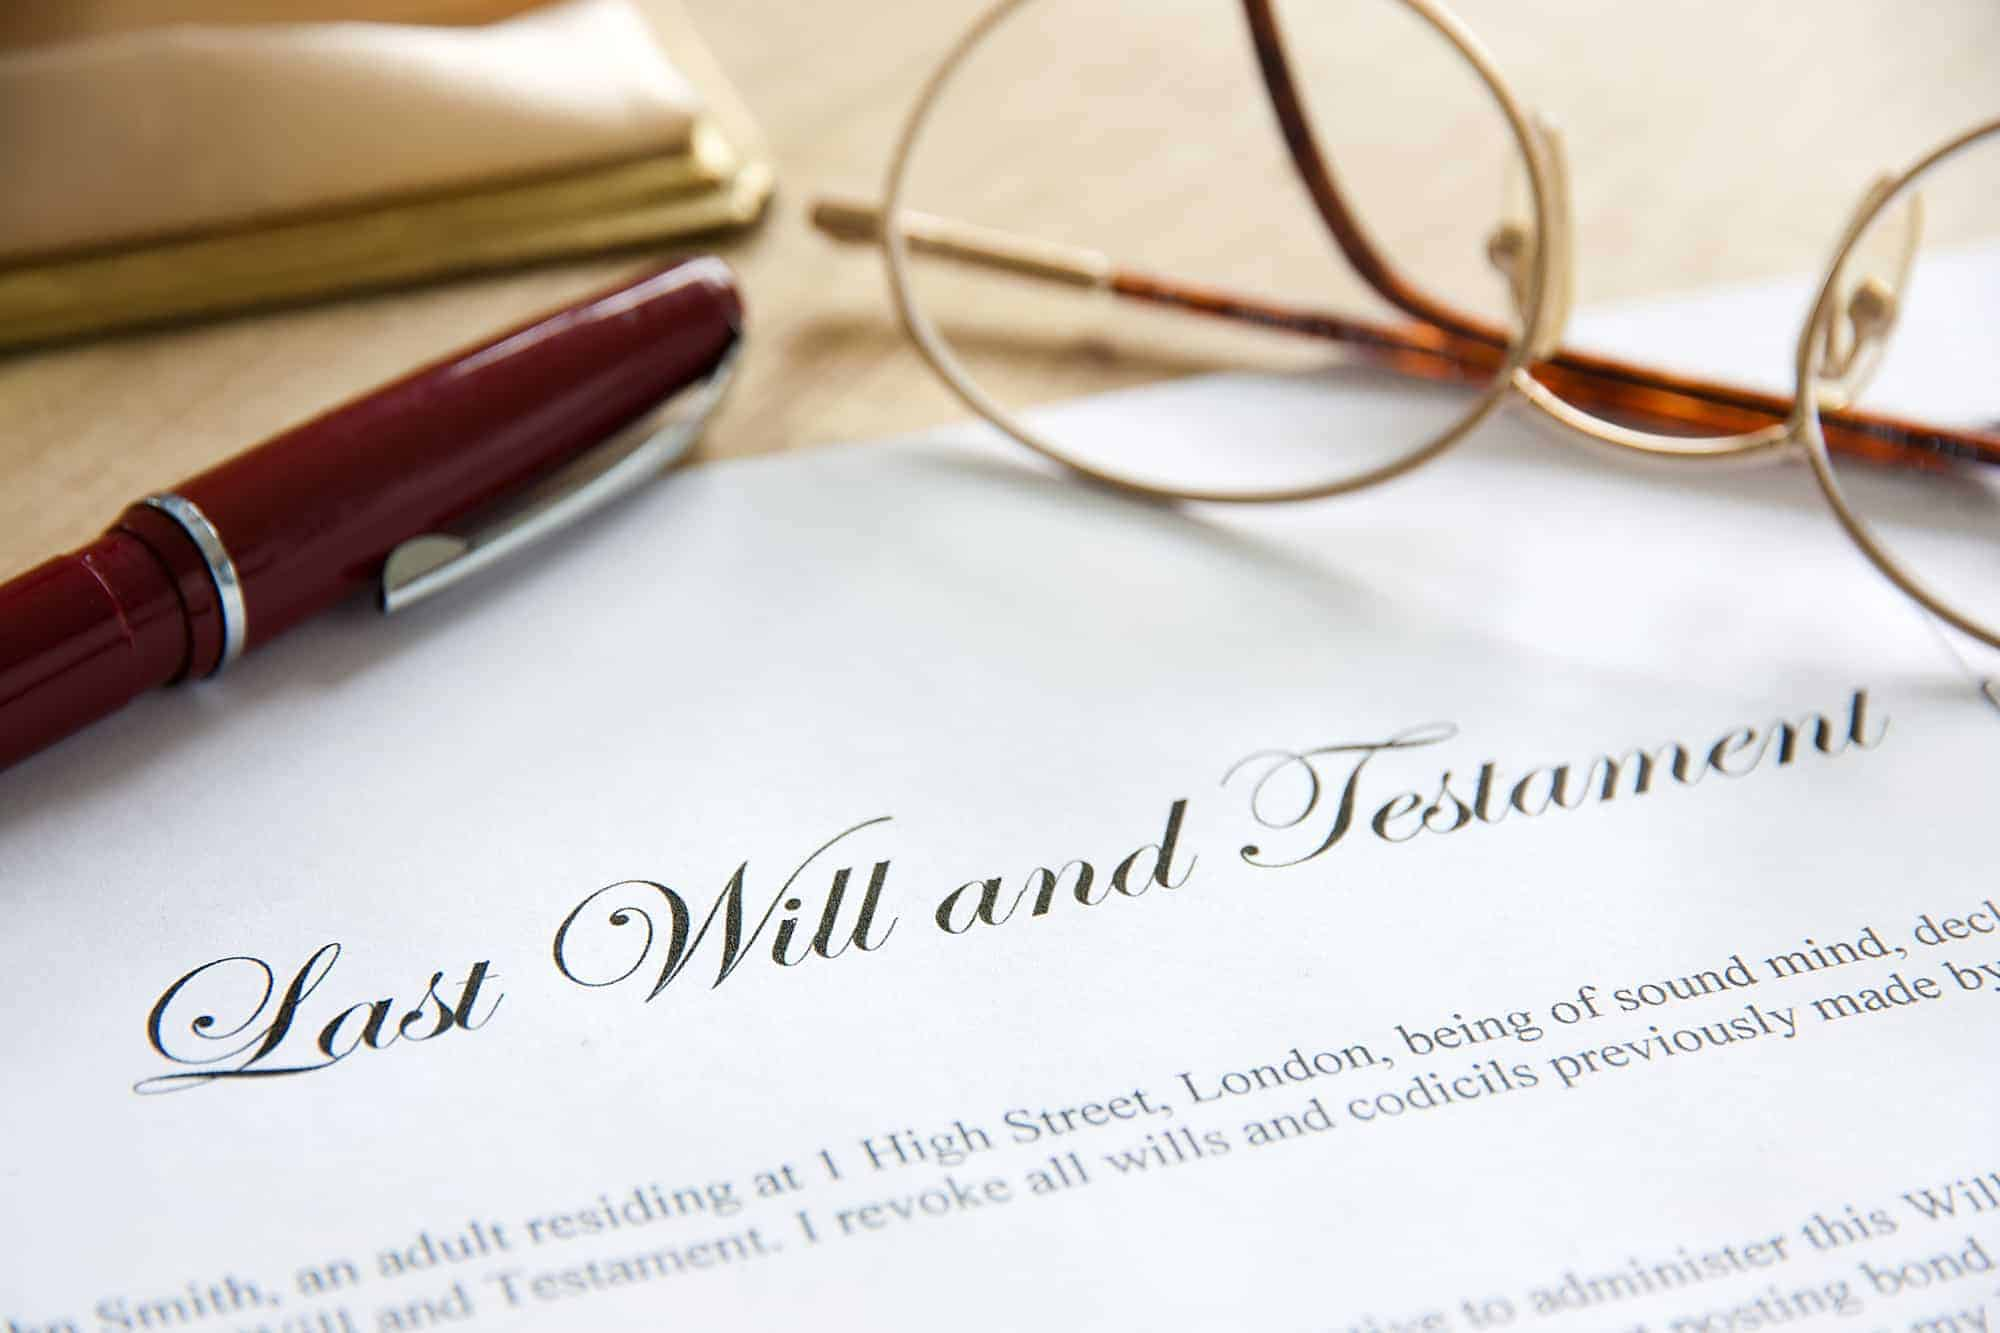 Last Will and Testement